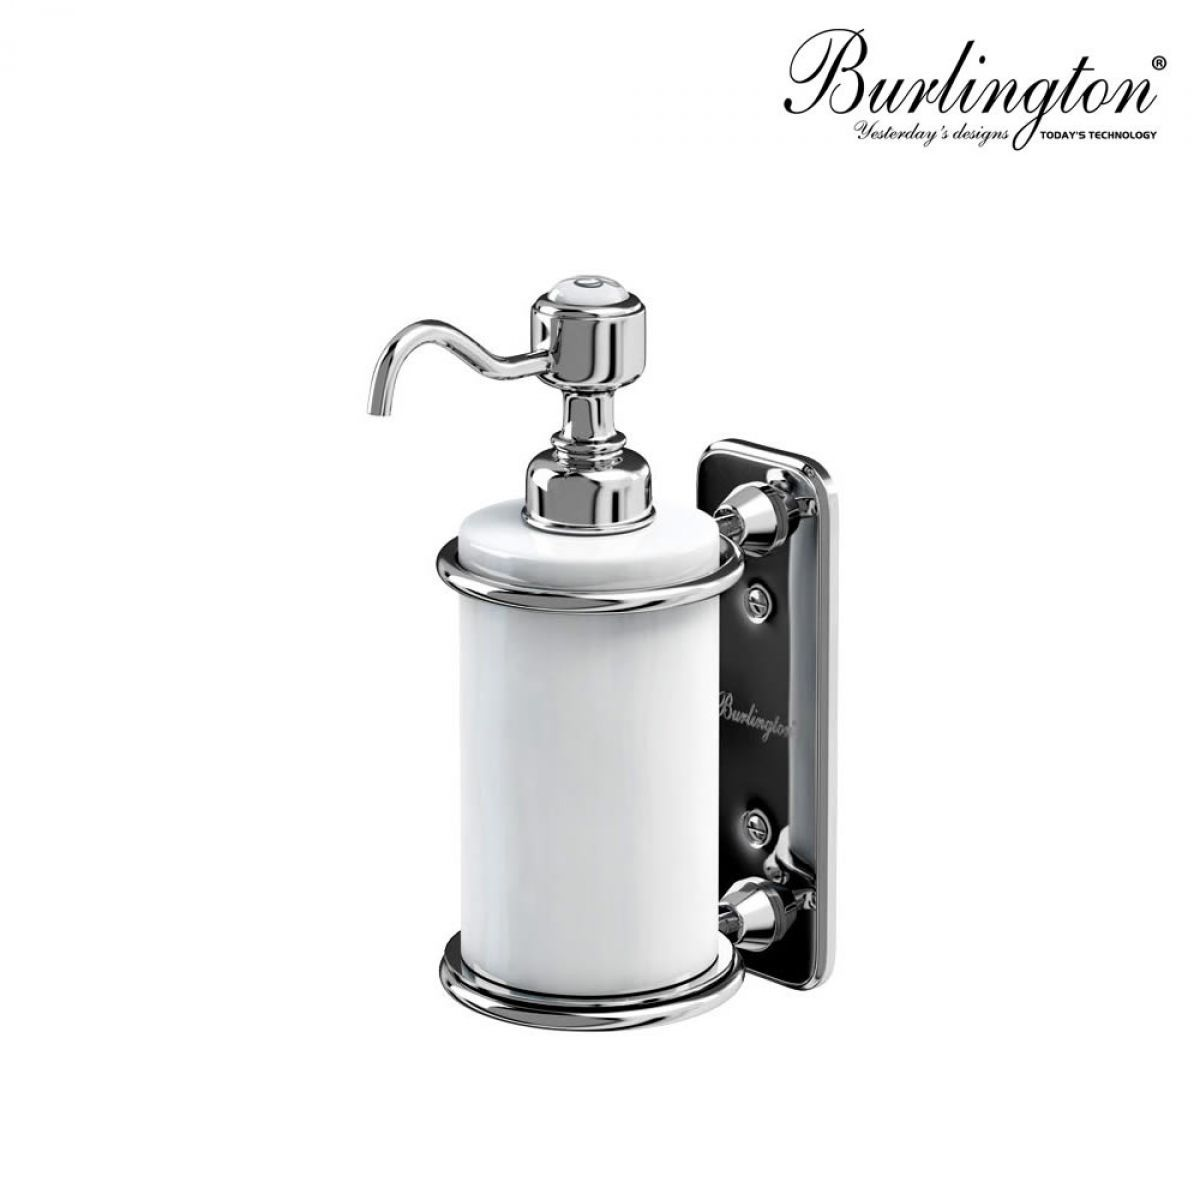 Hand Soap Bottle Holder Burlington Traditional Wall Mounted Liquid Soap Dispenser